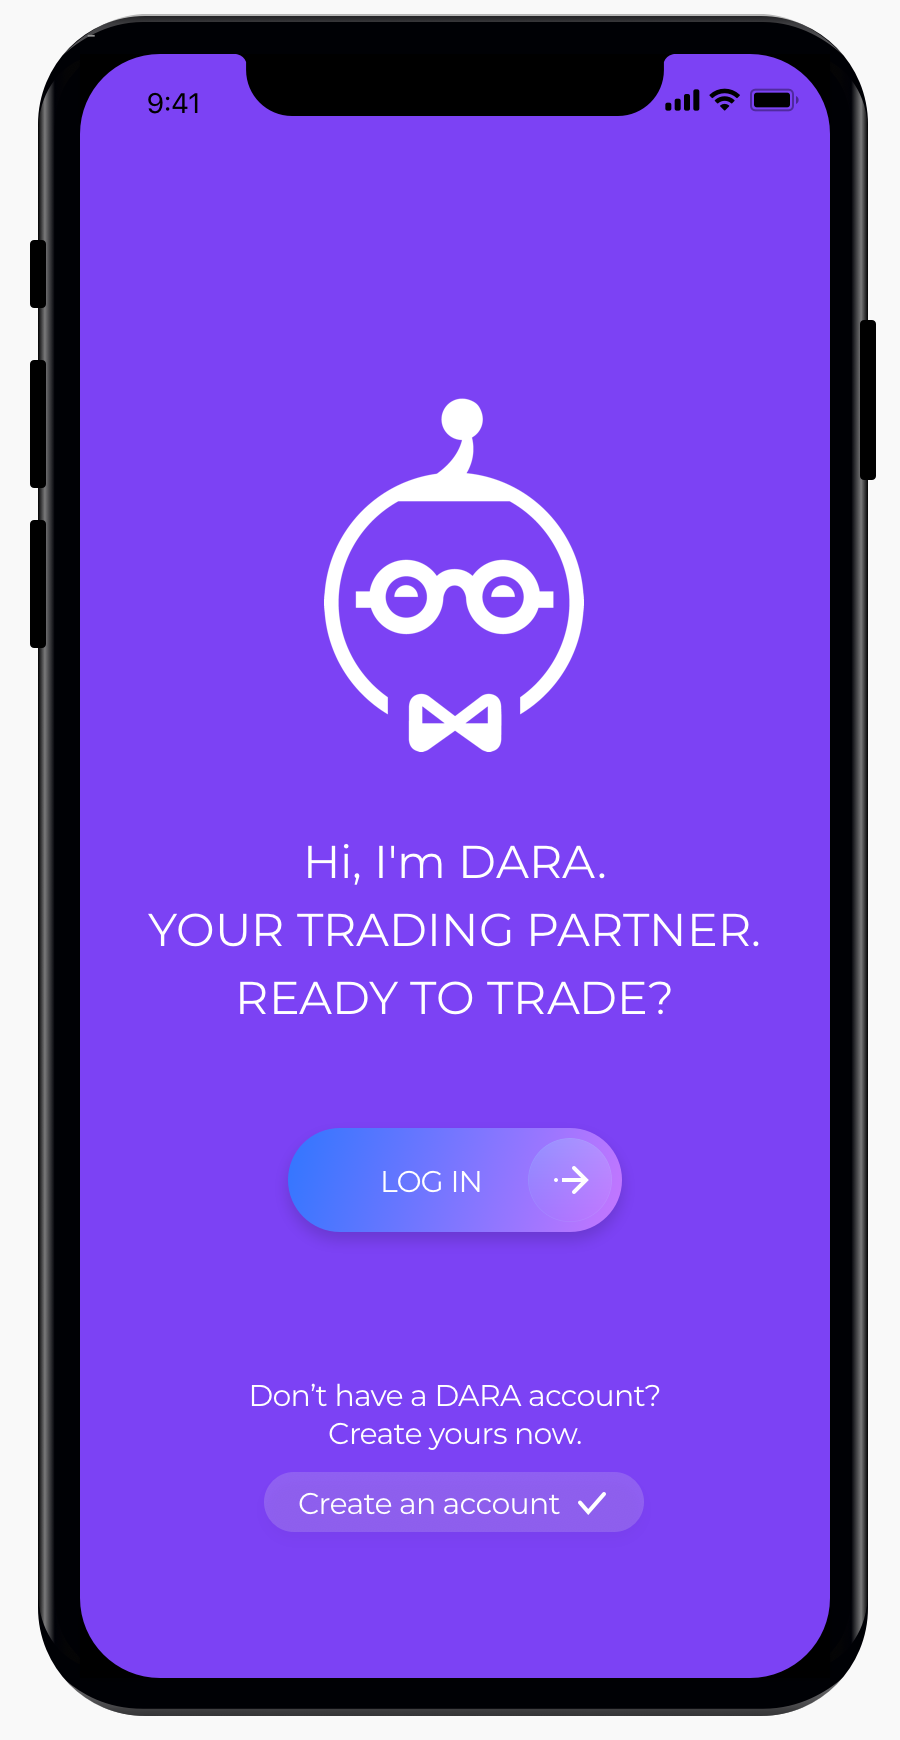 Connect DARA to your trading account